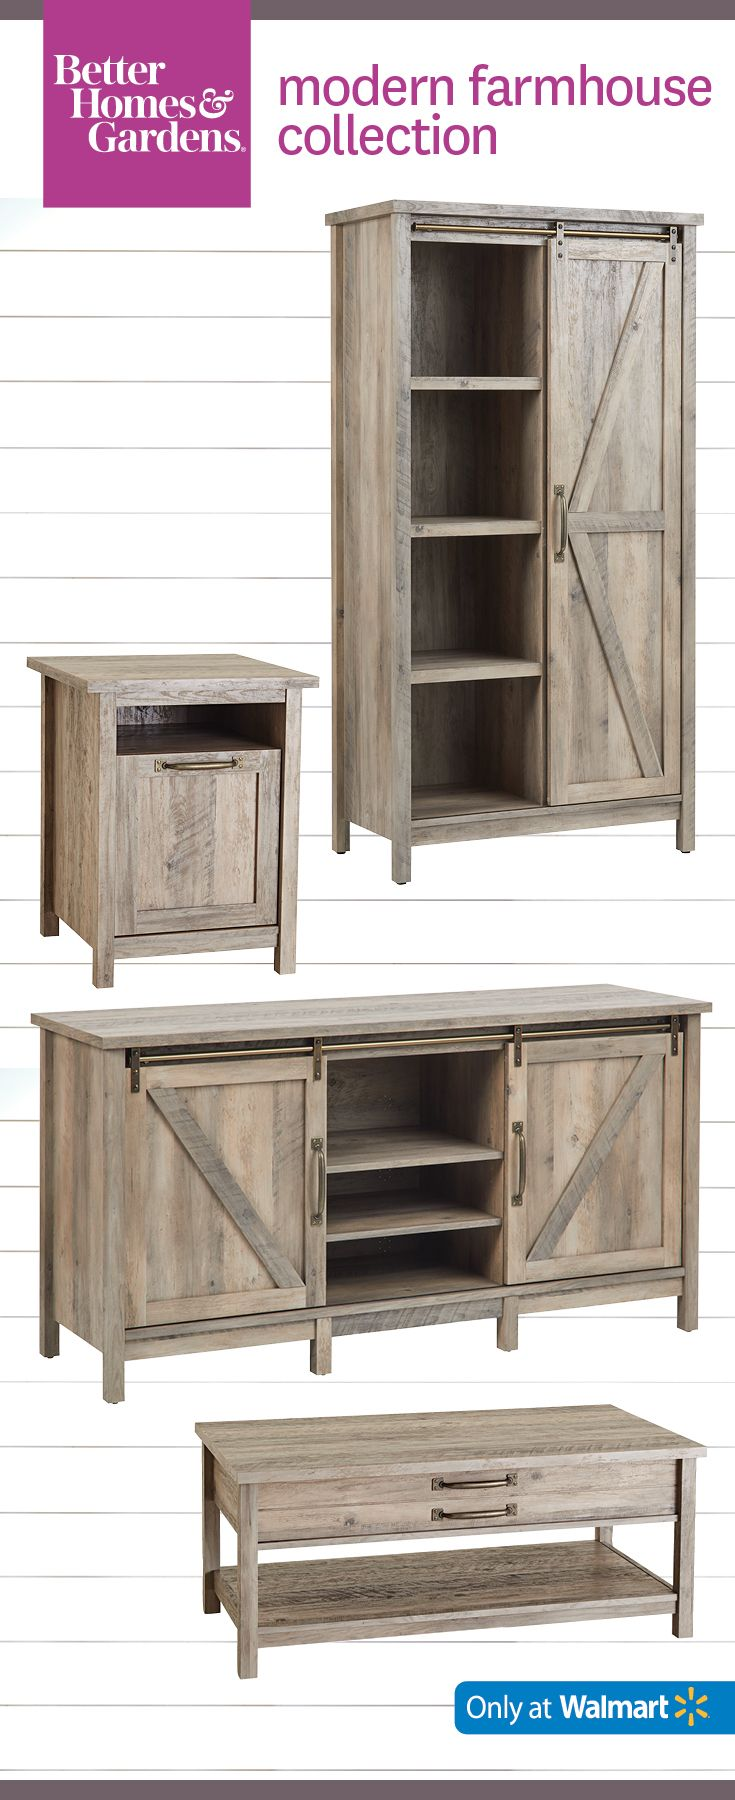 Muebles De Madera En Walmart Modern Farmhouse Is This Spring S Top Trend Shop The Bhg Modern